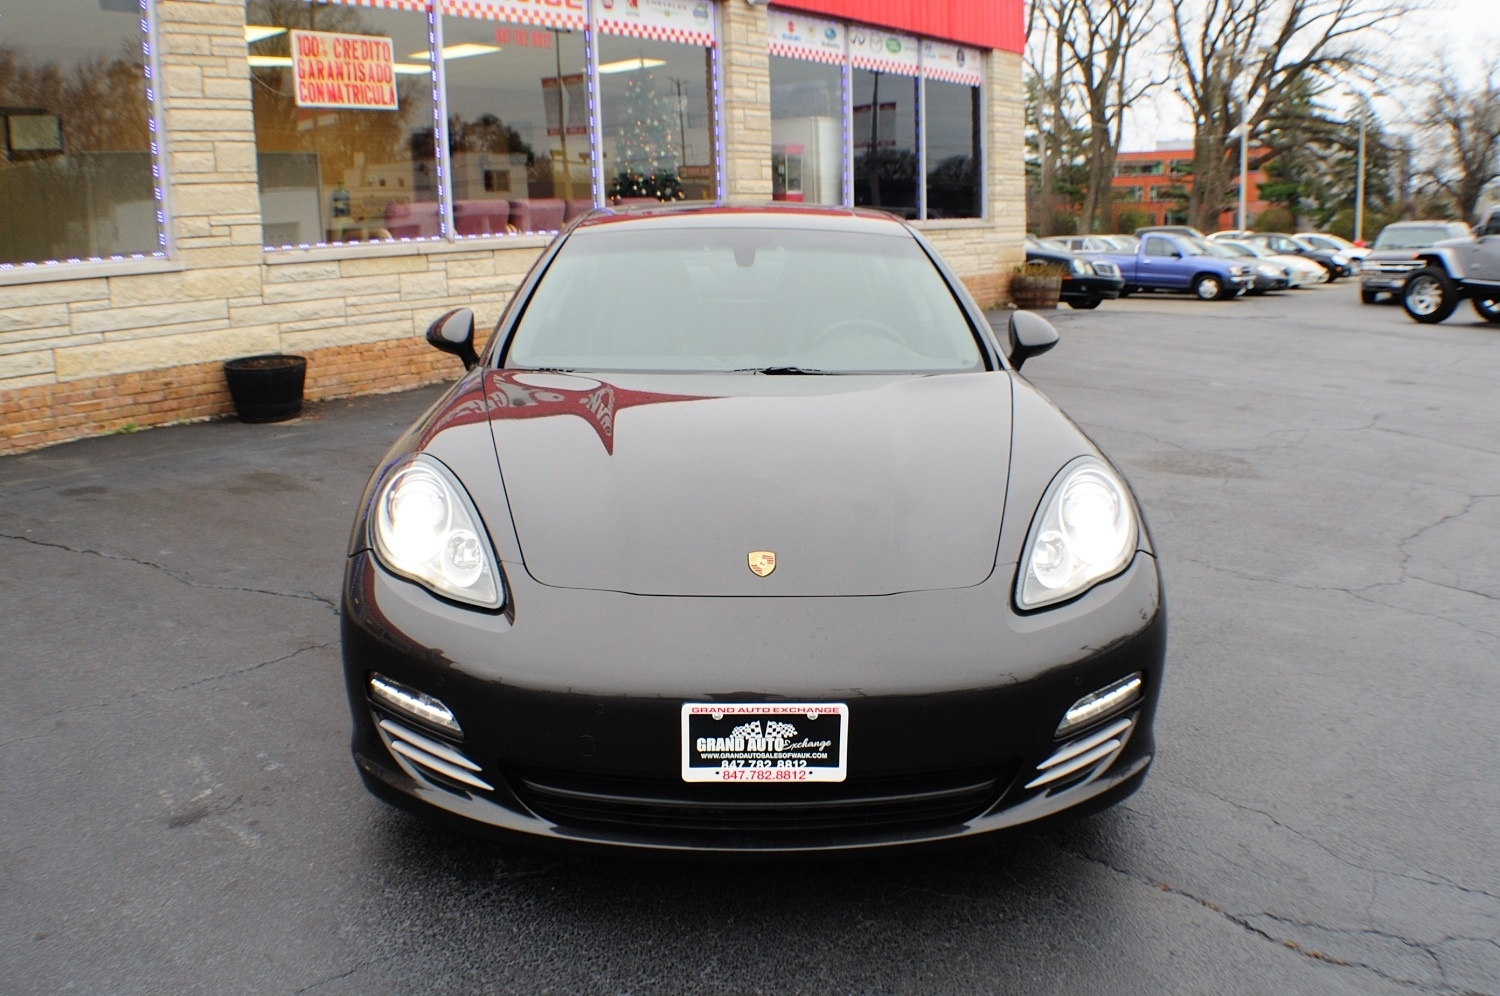 2011 Porsche Panamera Gray Sports Car used car sale Gurnee Kenosha Mchenry Chicago Illinois